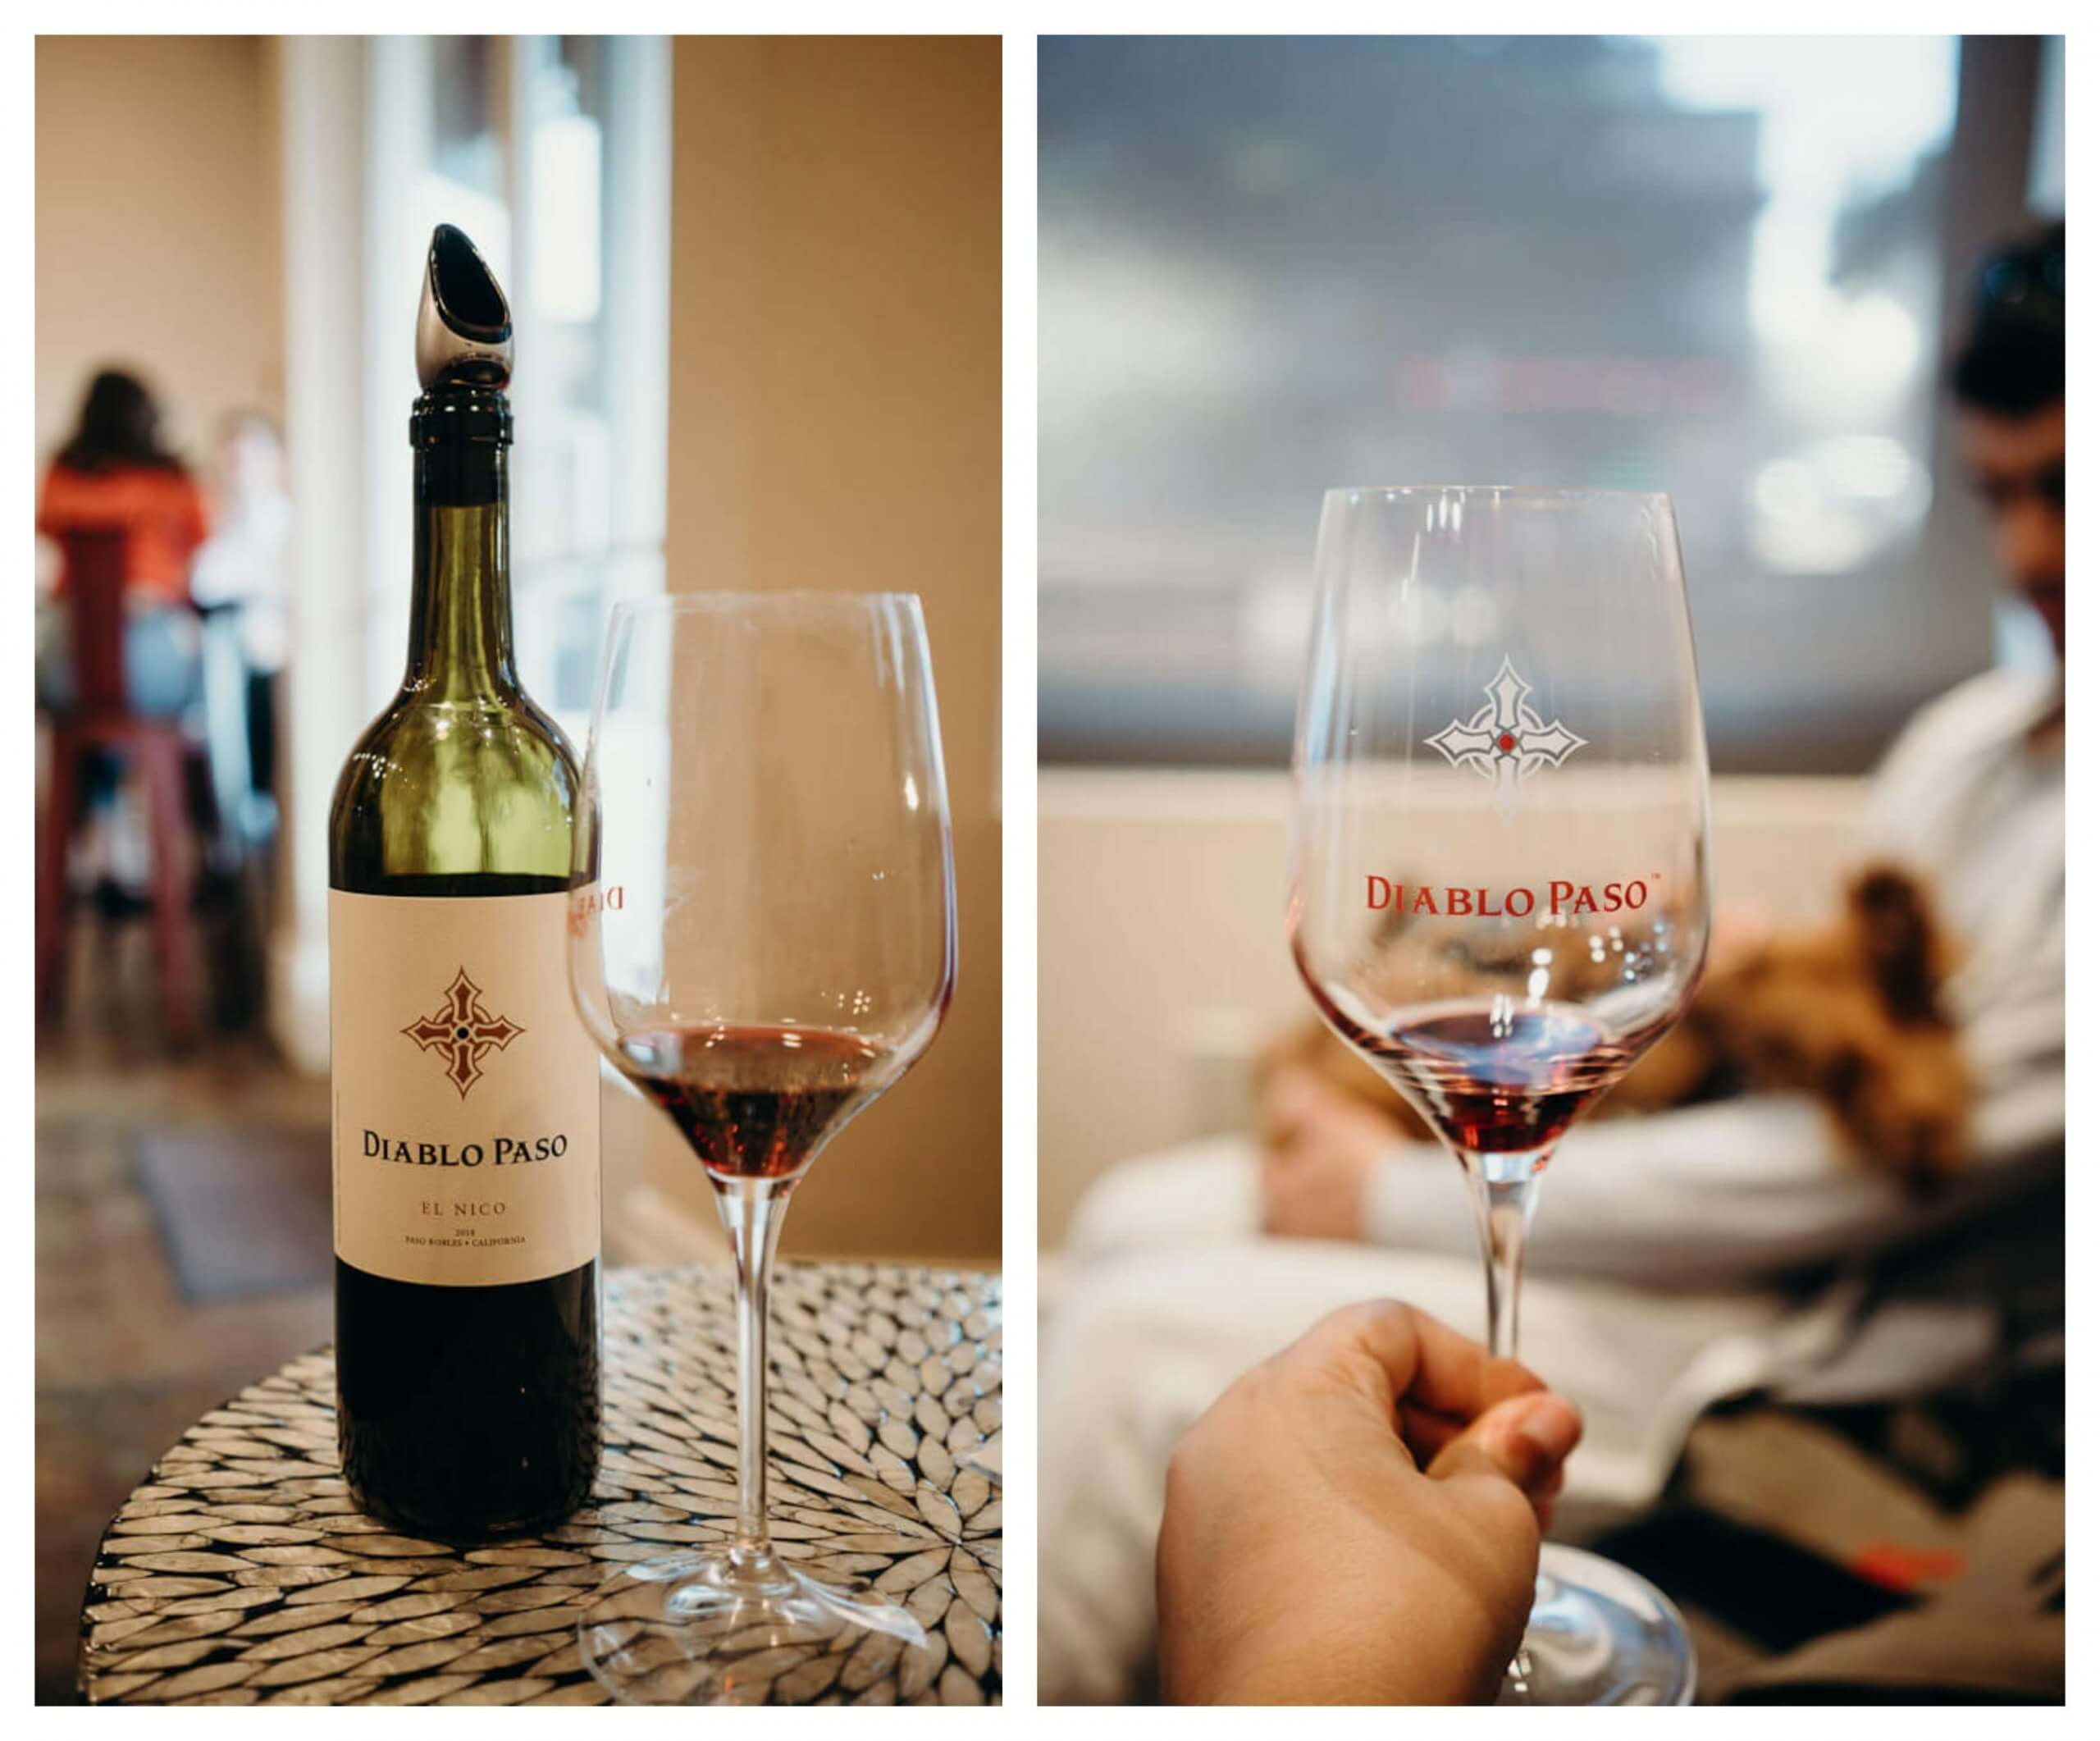 Diablo Paso is a dog friendly wine tasting room in downtown Paso Robles